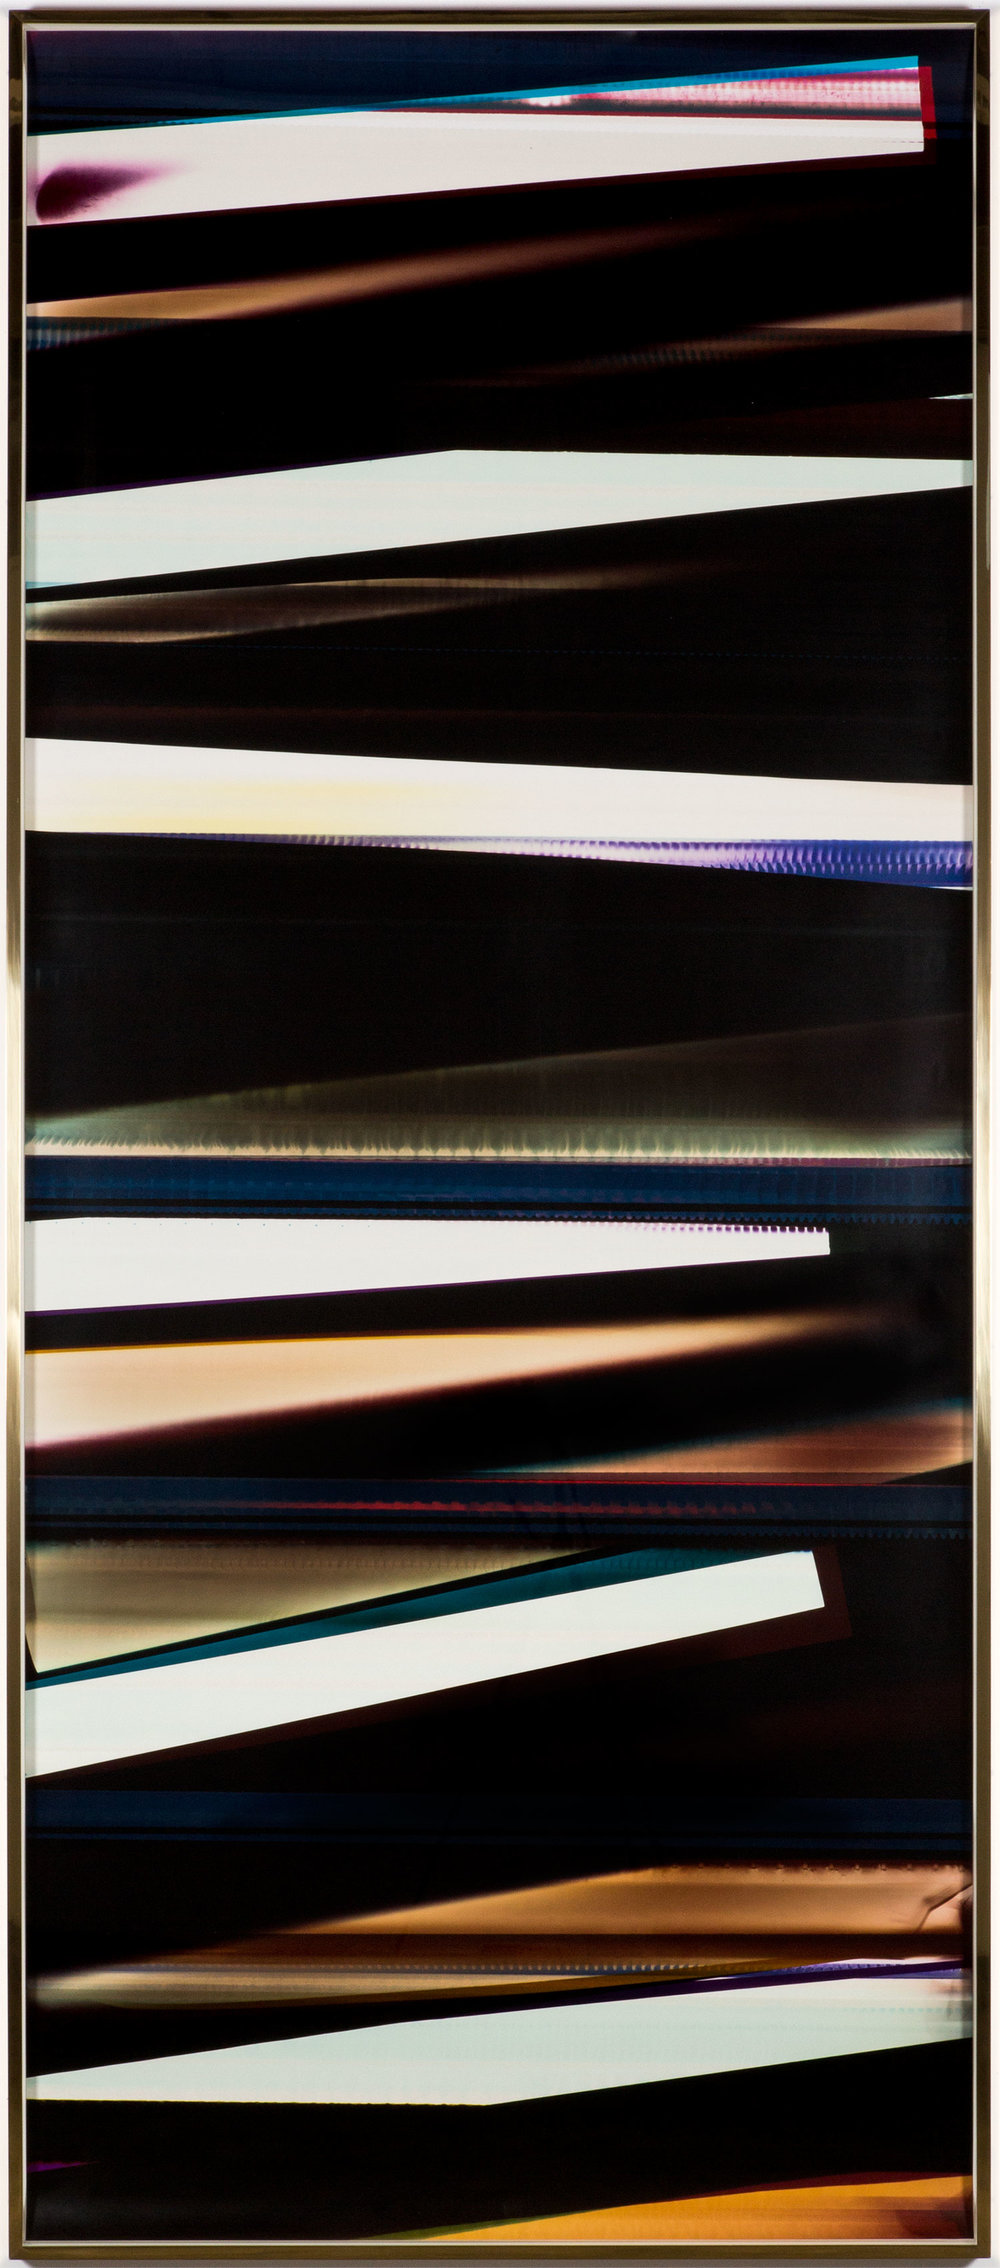 RA4 Contact Print / Processor Stall (9:6/MYC/Six Magnet: Los Angeles, California, July 15, 2014, Fuji Color Crystal Archive Super Type C, Em. No. 107-116, 75414), Kreonite KM IV 5225 RA4 Color Processor, Ser. No. 00092174    2016   Color photographic paper  119 3/4 x 51 1/2 inches   RA4 Contact Prints, 2014–